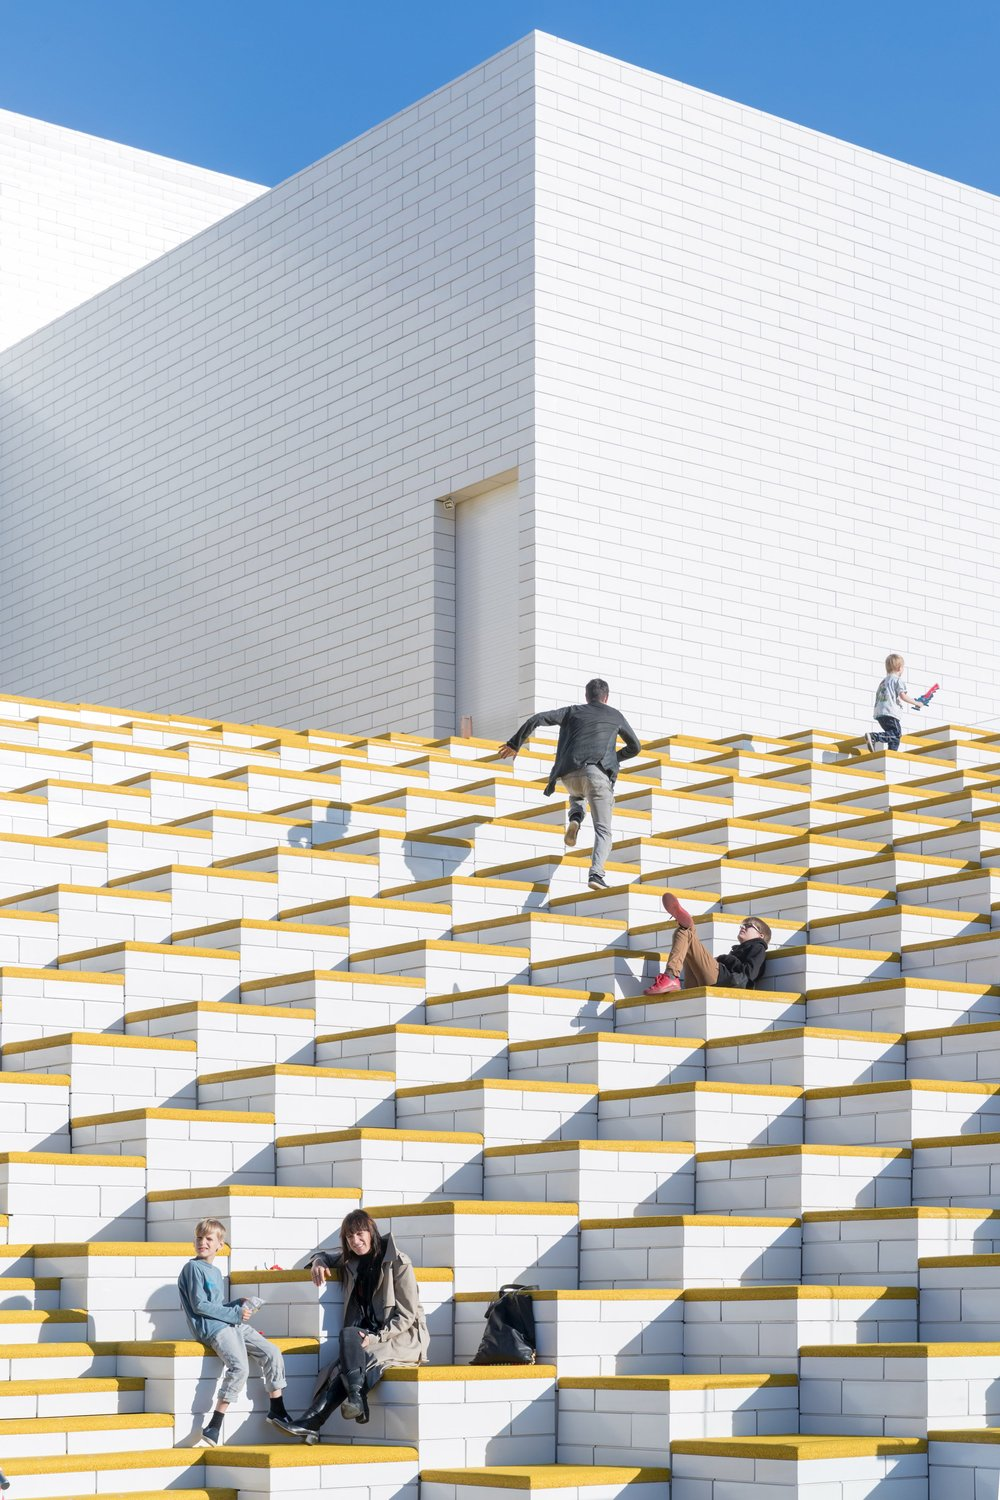 lego-house-big-photographs-iwan-baan-billund-denmark-architecture_dezeen_2364_col_6.jpg